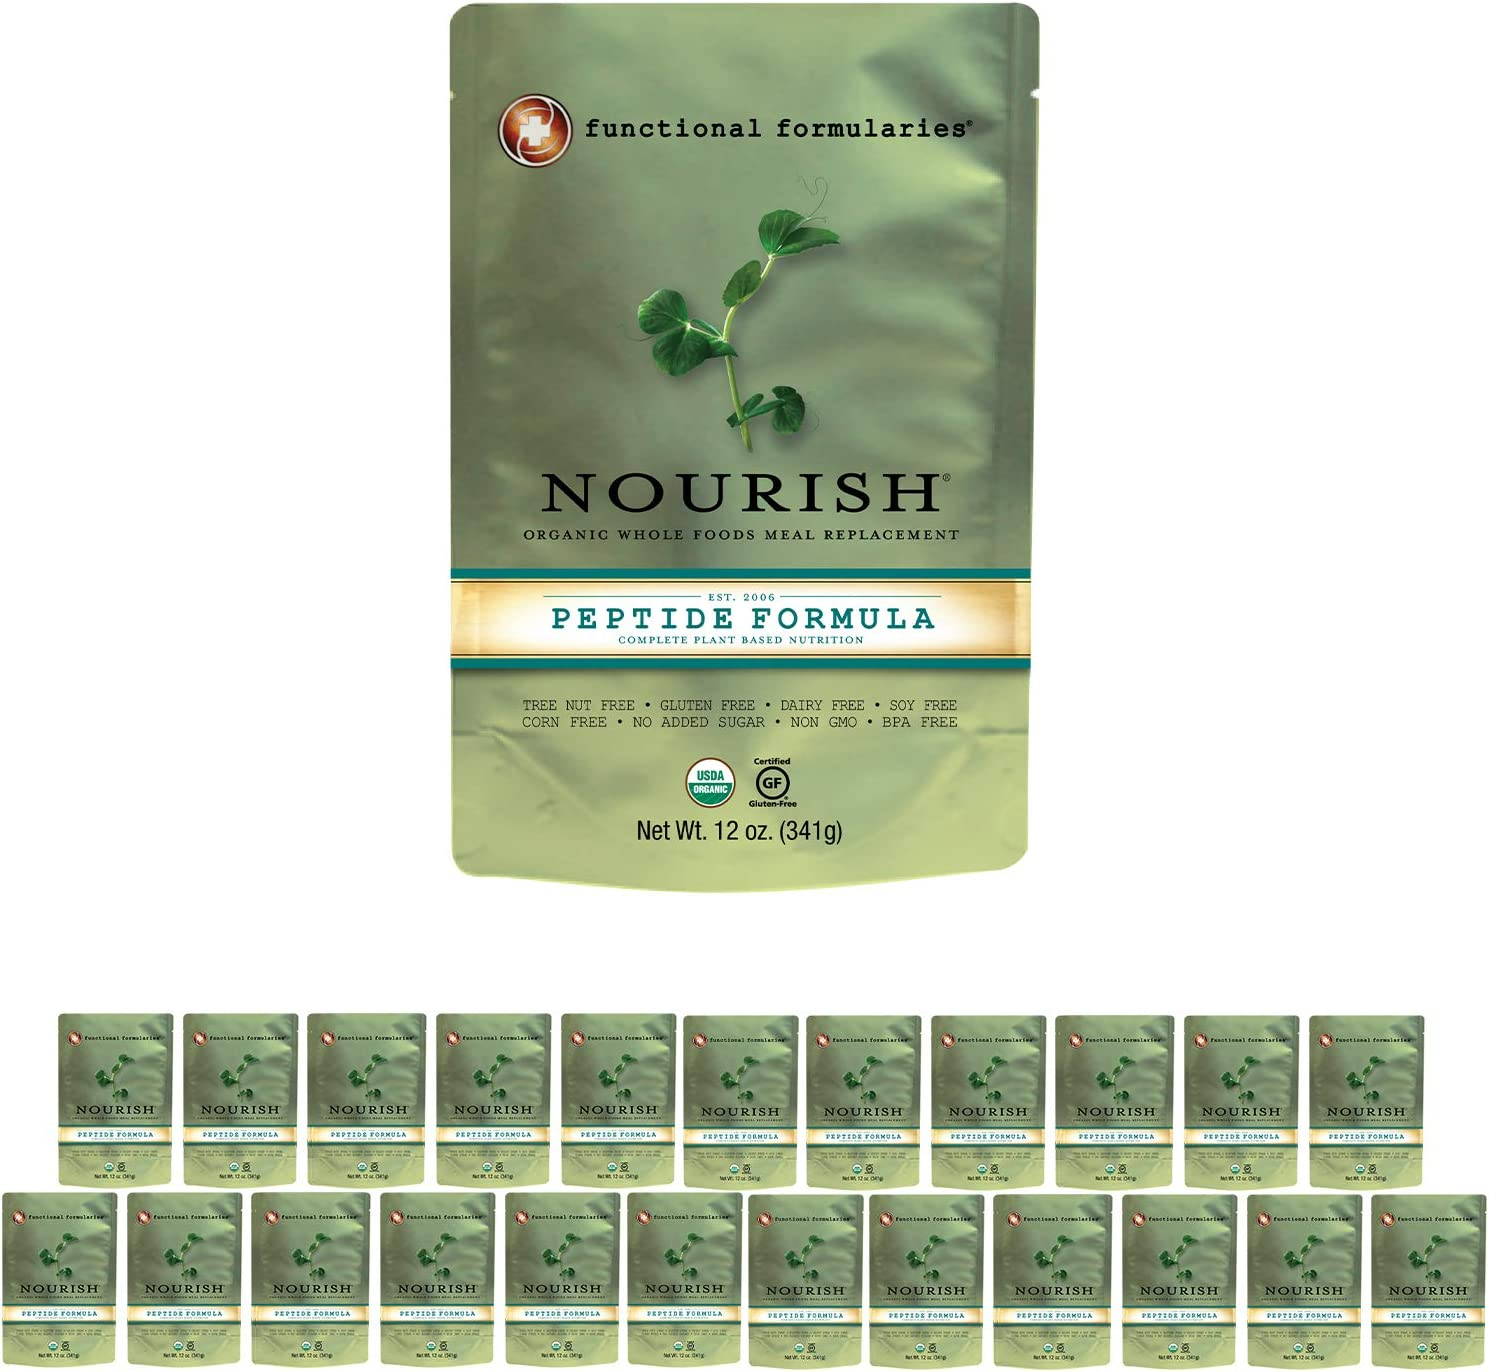 Functional Formularies Nourish Peptide Organic Tube Feeding Formula and Nutritional Meal Replacement Supplement, 24 Pack